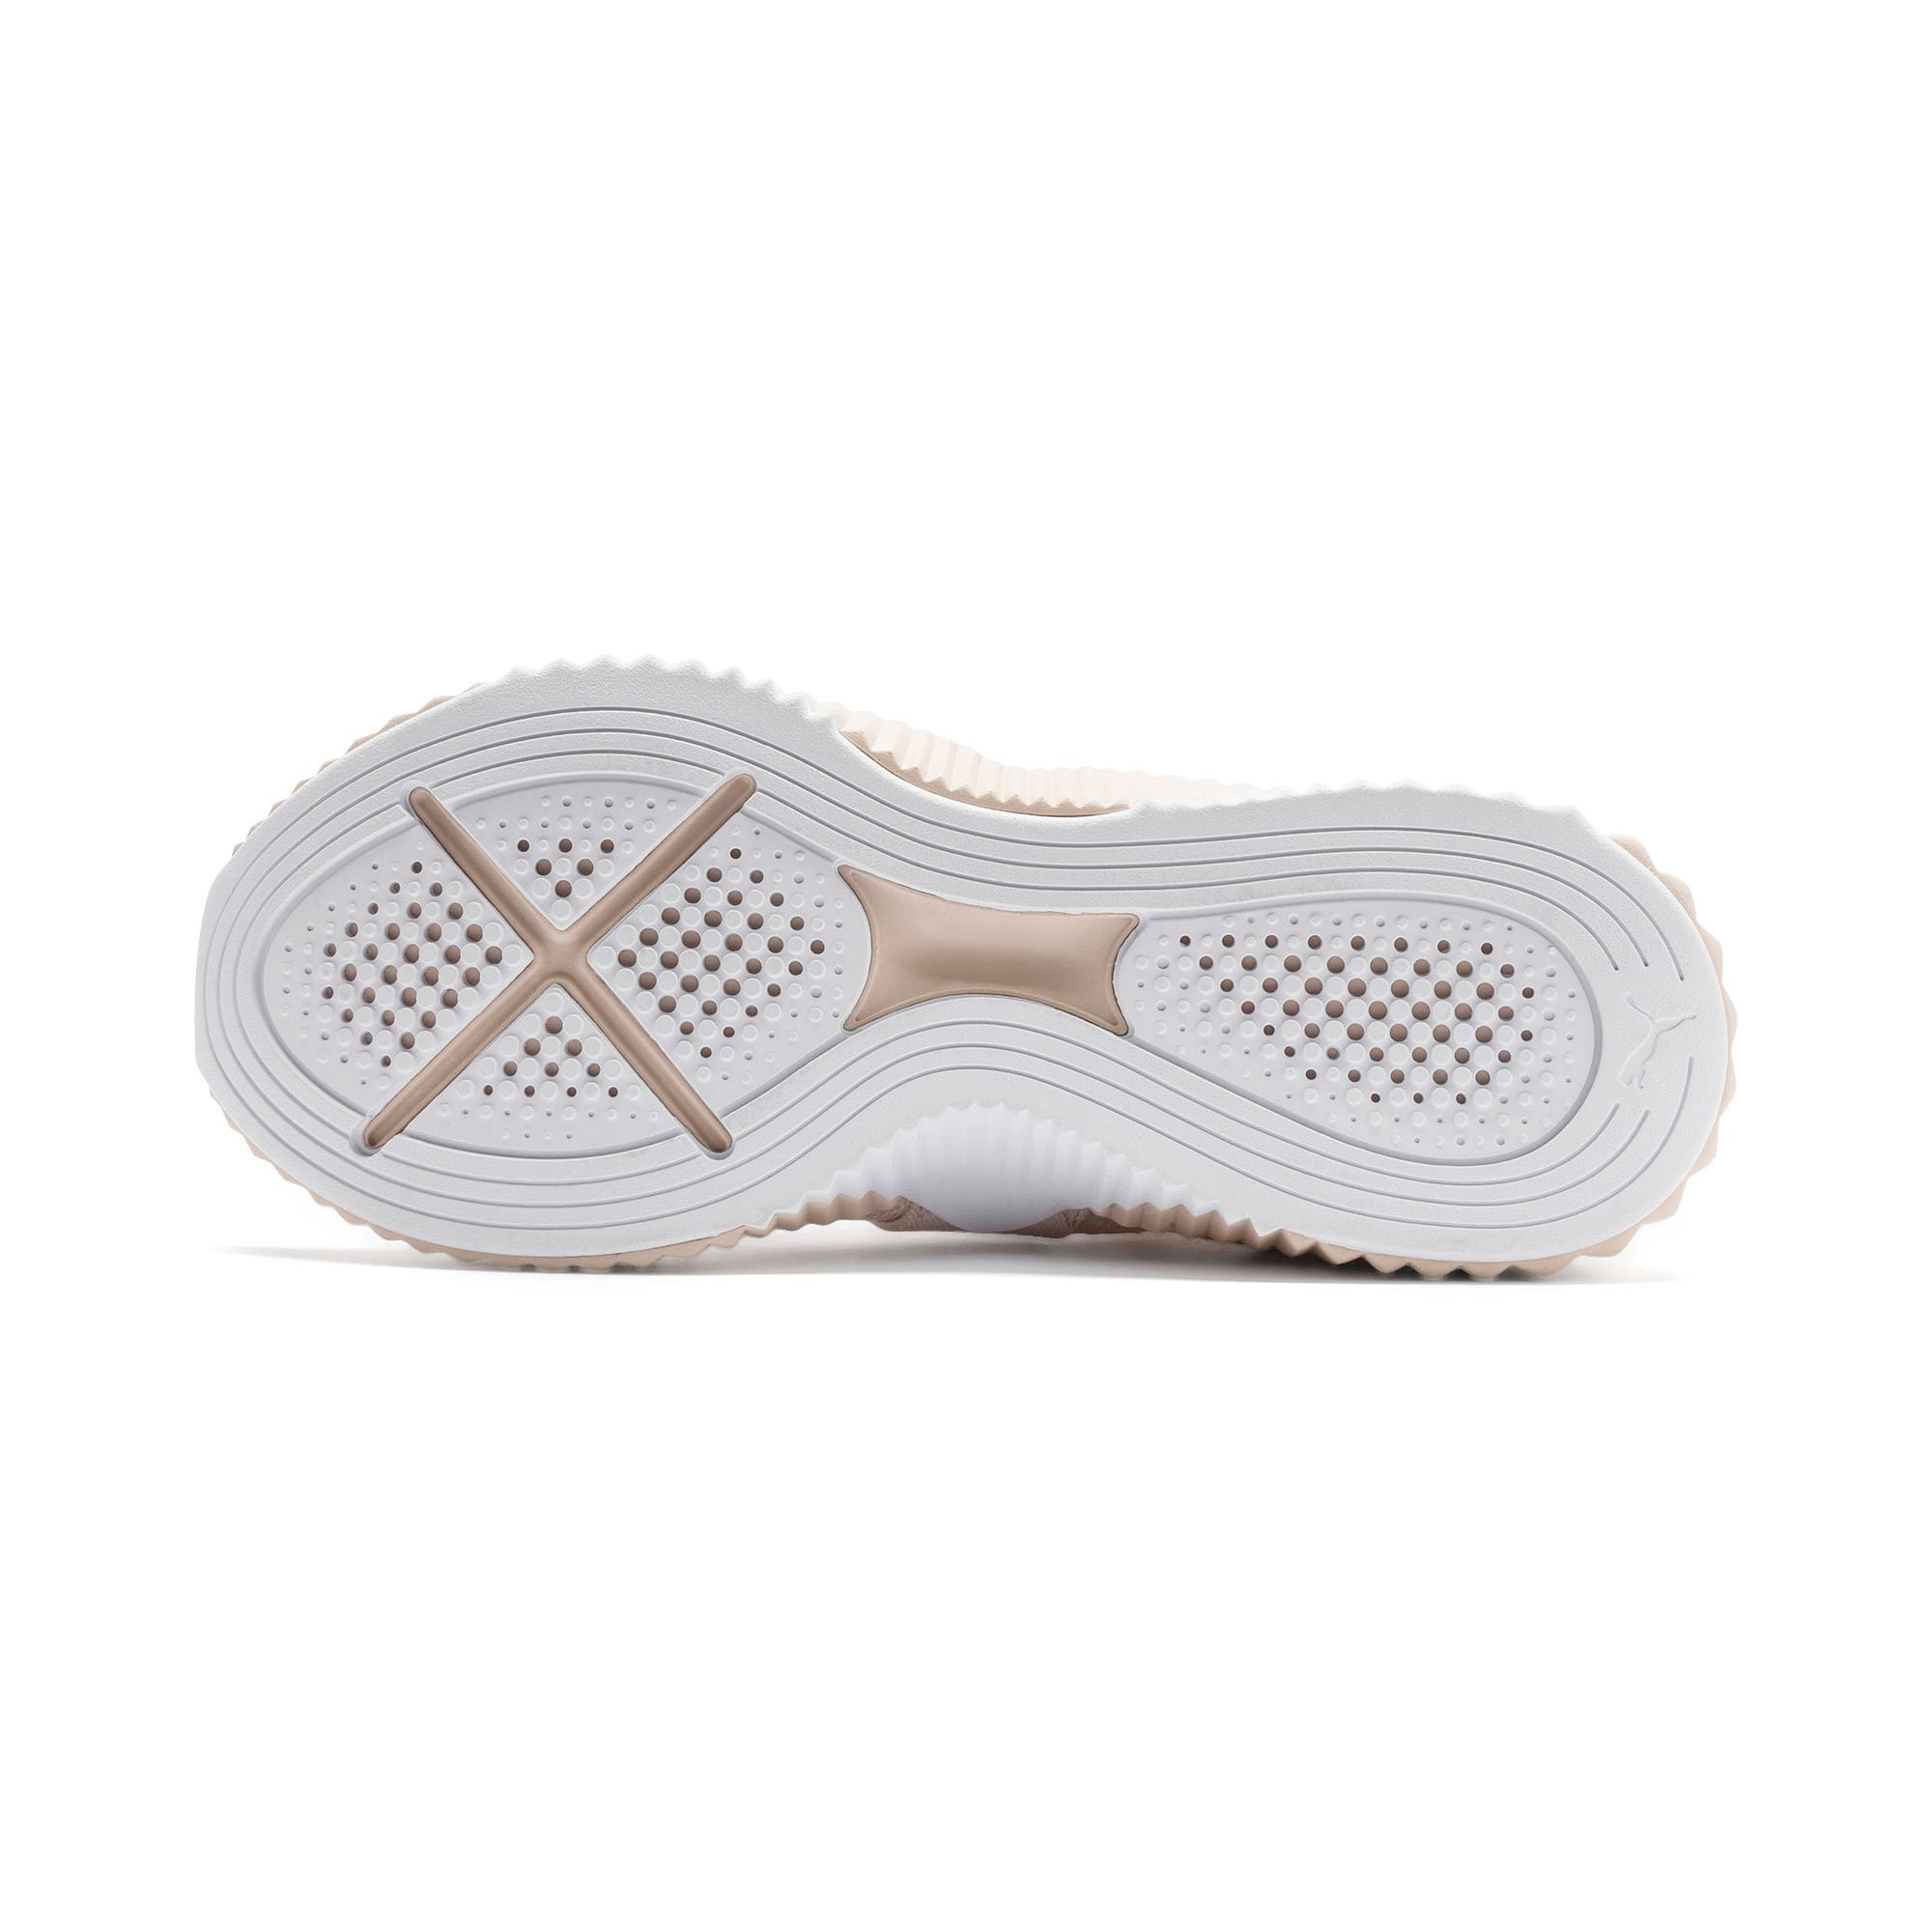 Thumbnail 5 of Defy Mid Core Women's Trainers, Pastel Parchment-Puma White, medium-IND